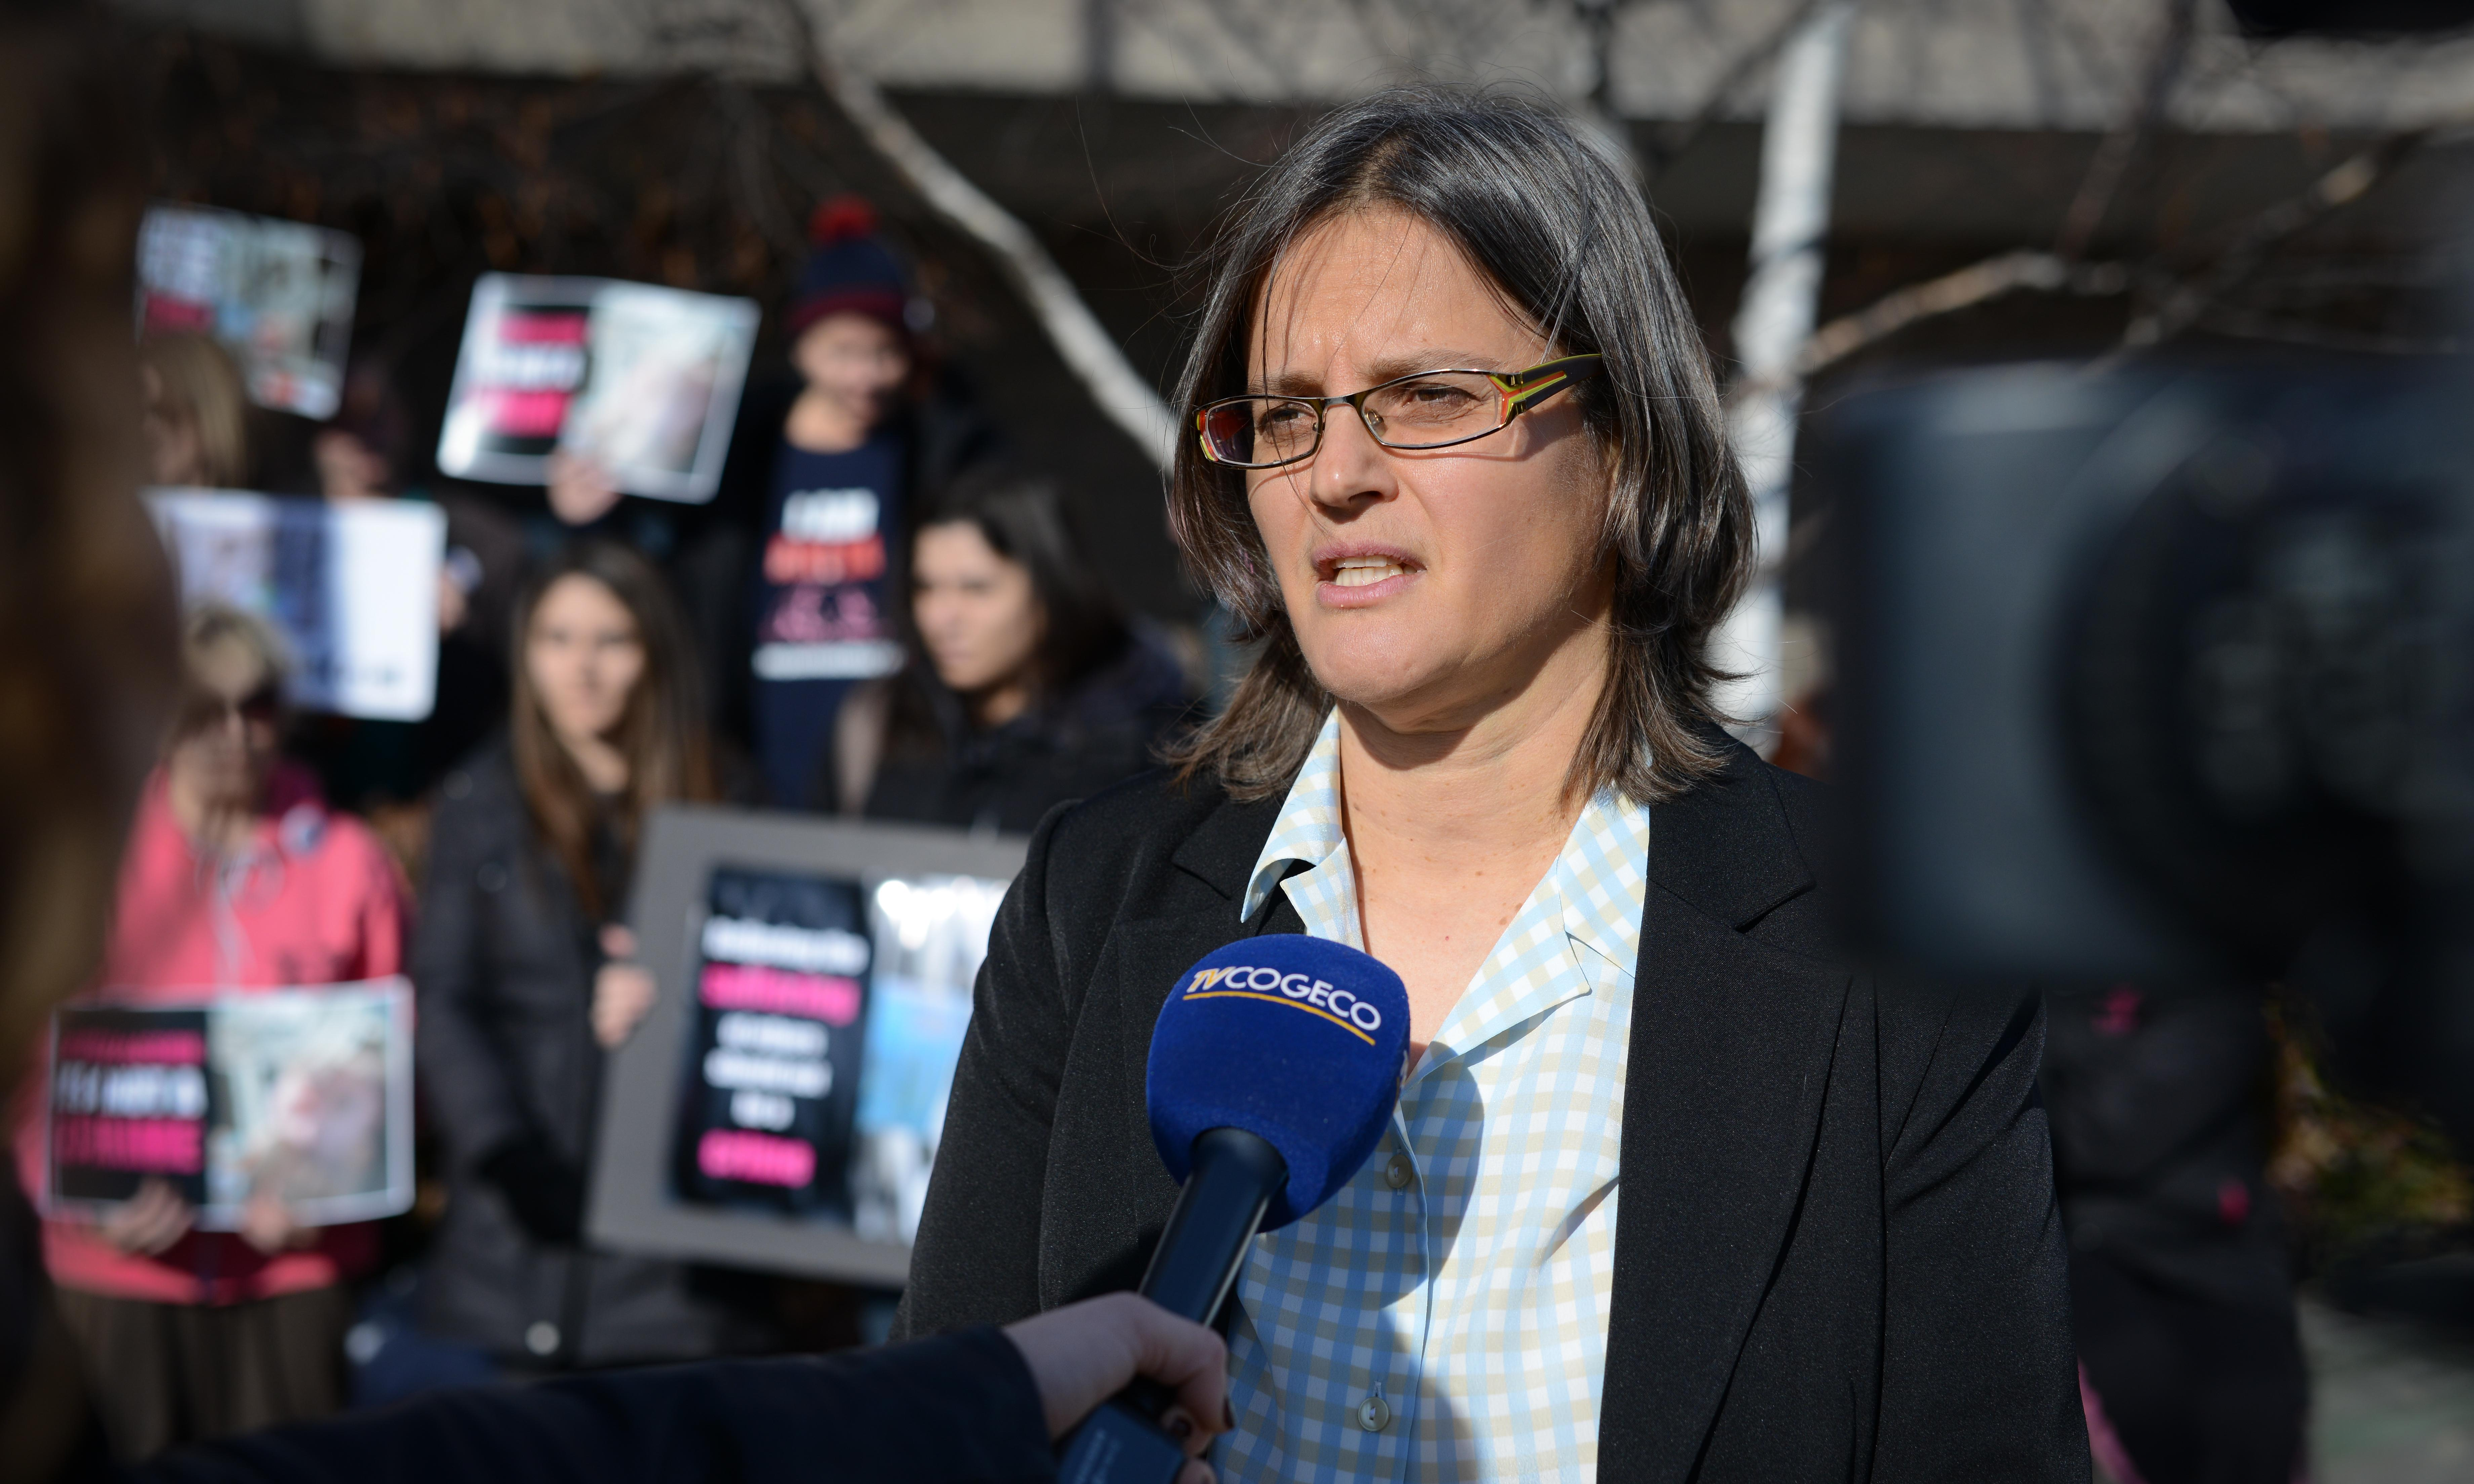 Judge dismisses case of woman who gave water to pigs headed to slaughter